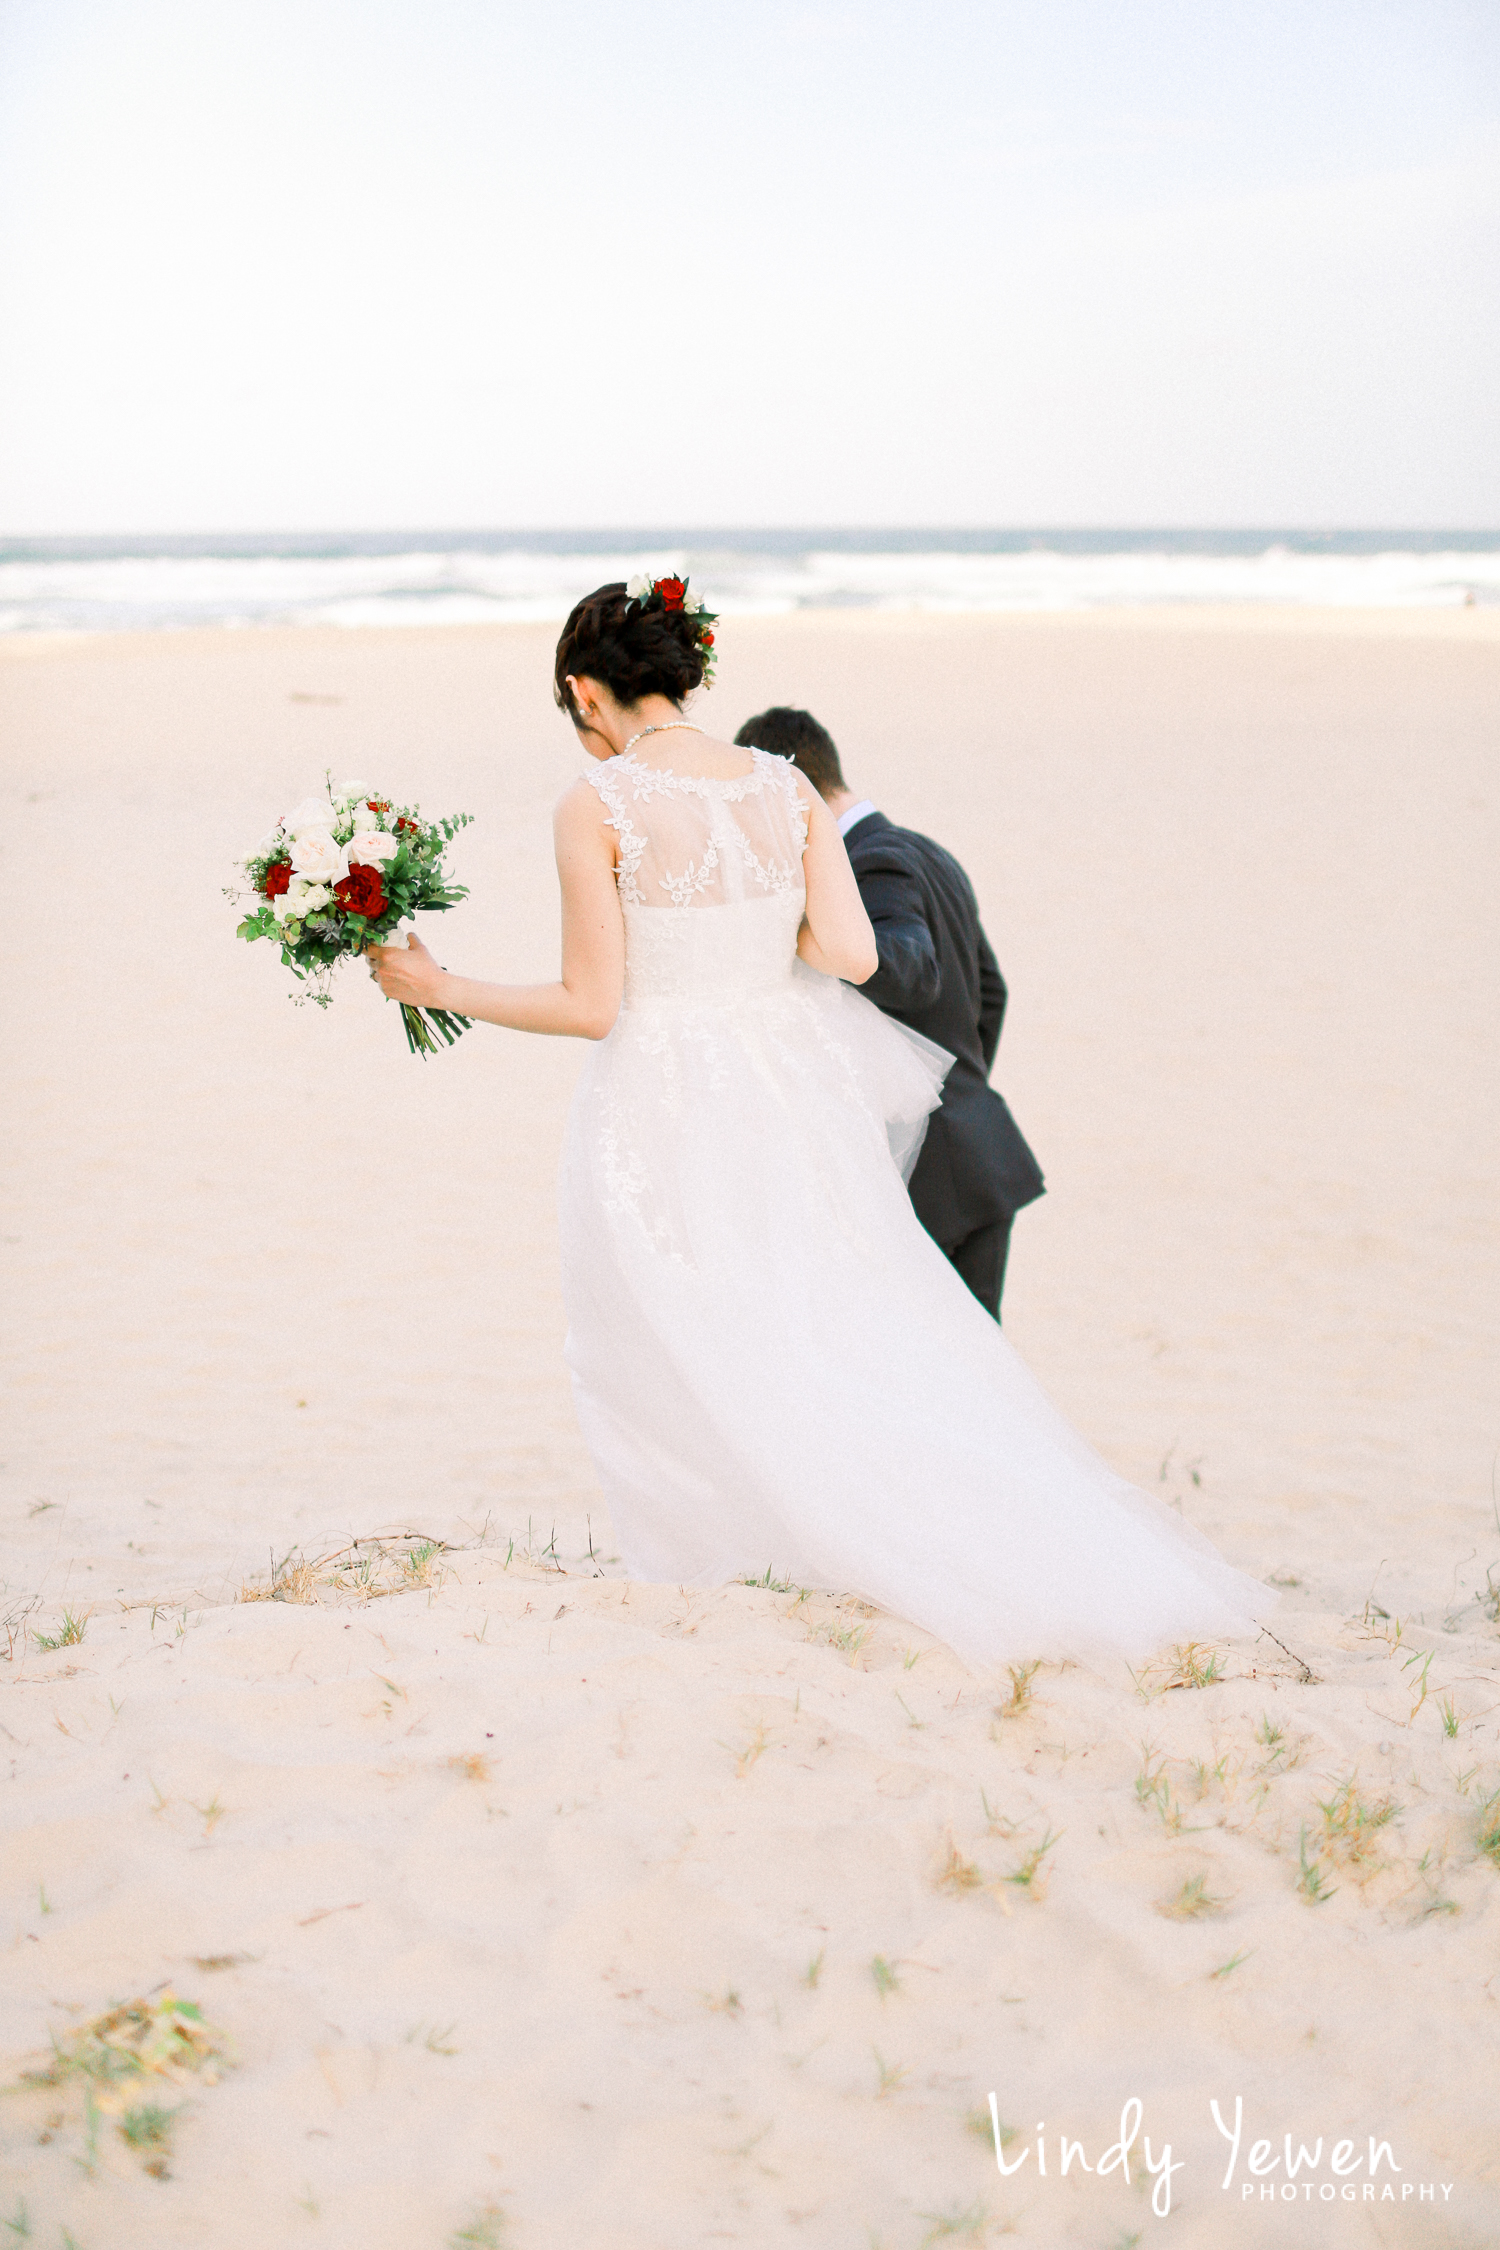 Sunshine-Beach-Weddings-Dimitrije-Maria 89.jpg